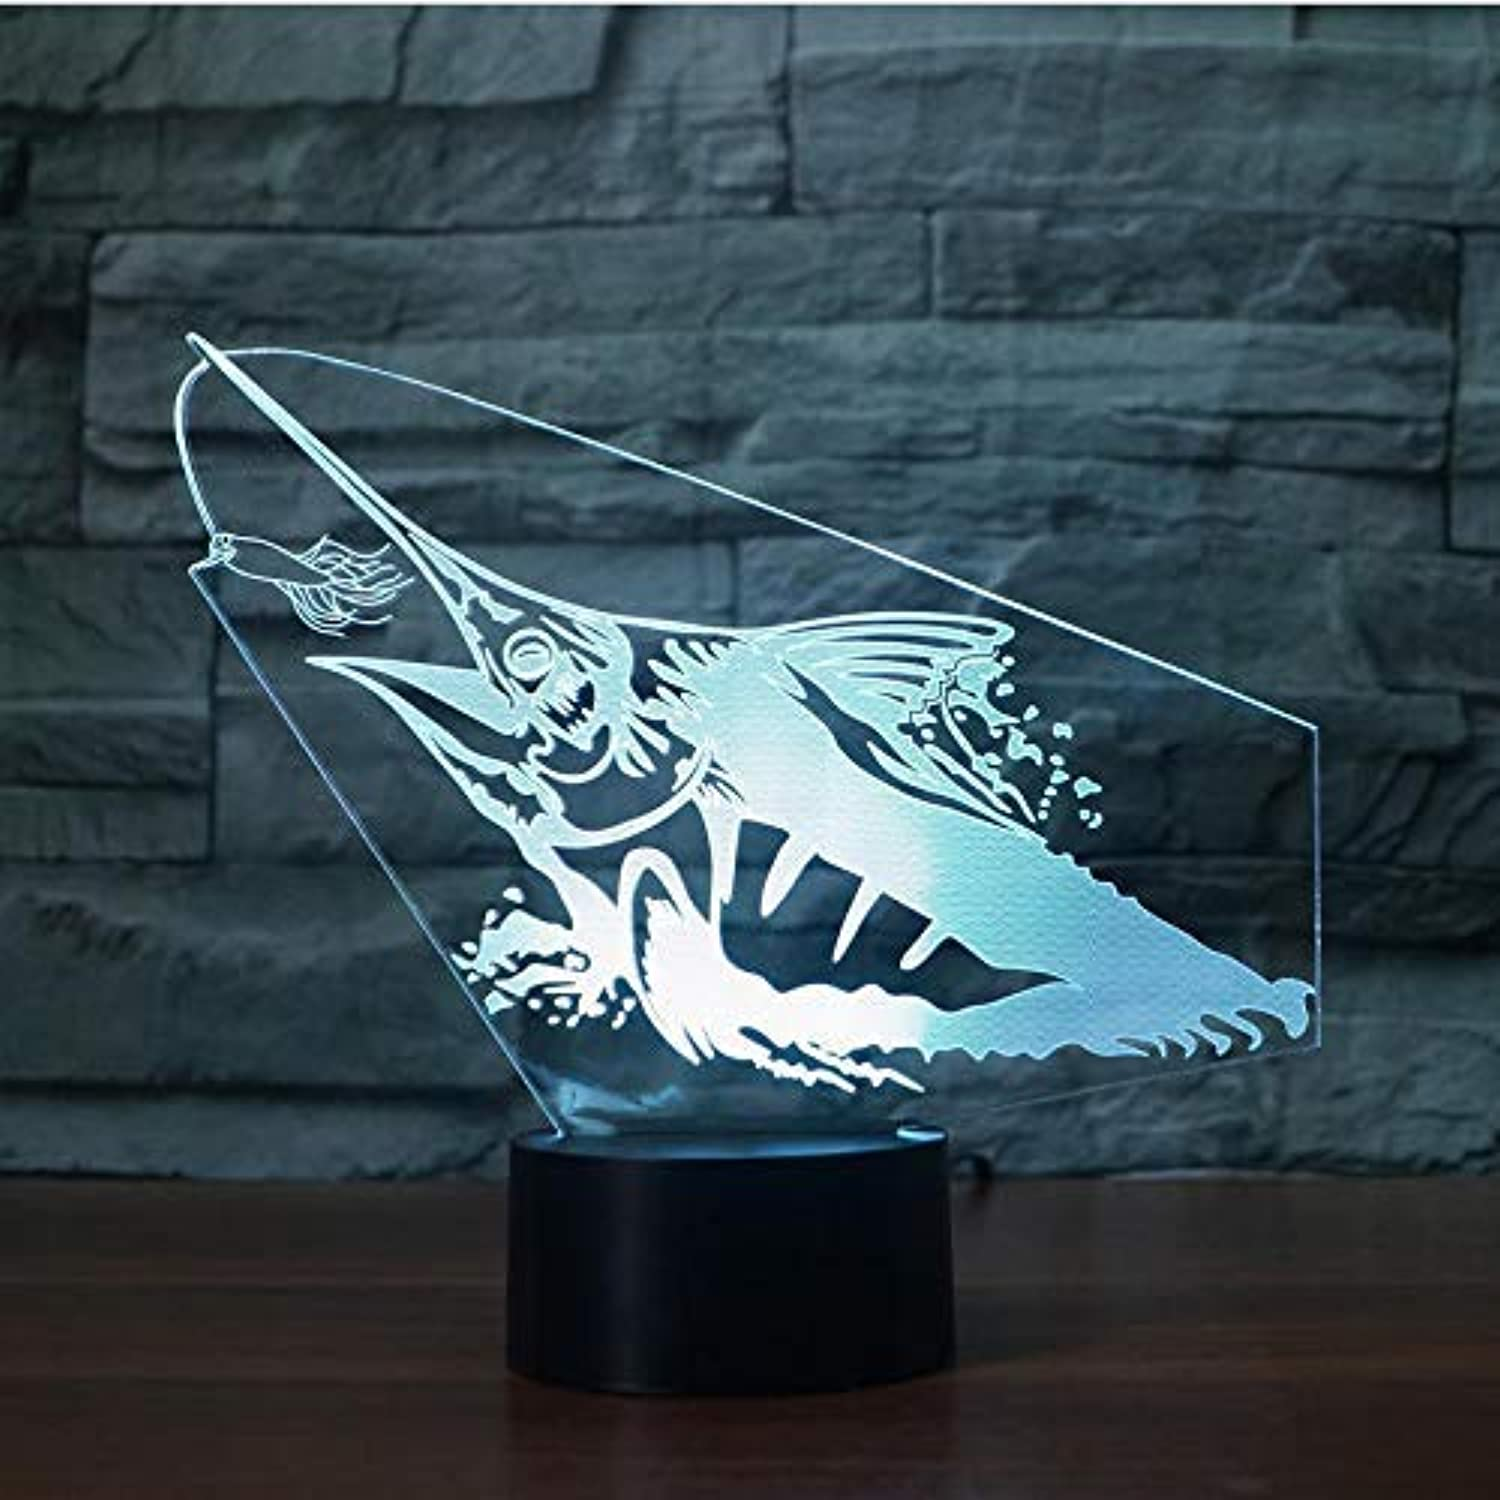 BMY Creative Fishin3D Night Light Fish Mode3D Illusion Lamp Led 7 color Changing USB Touch Sensor Atmosphere Lamp